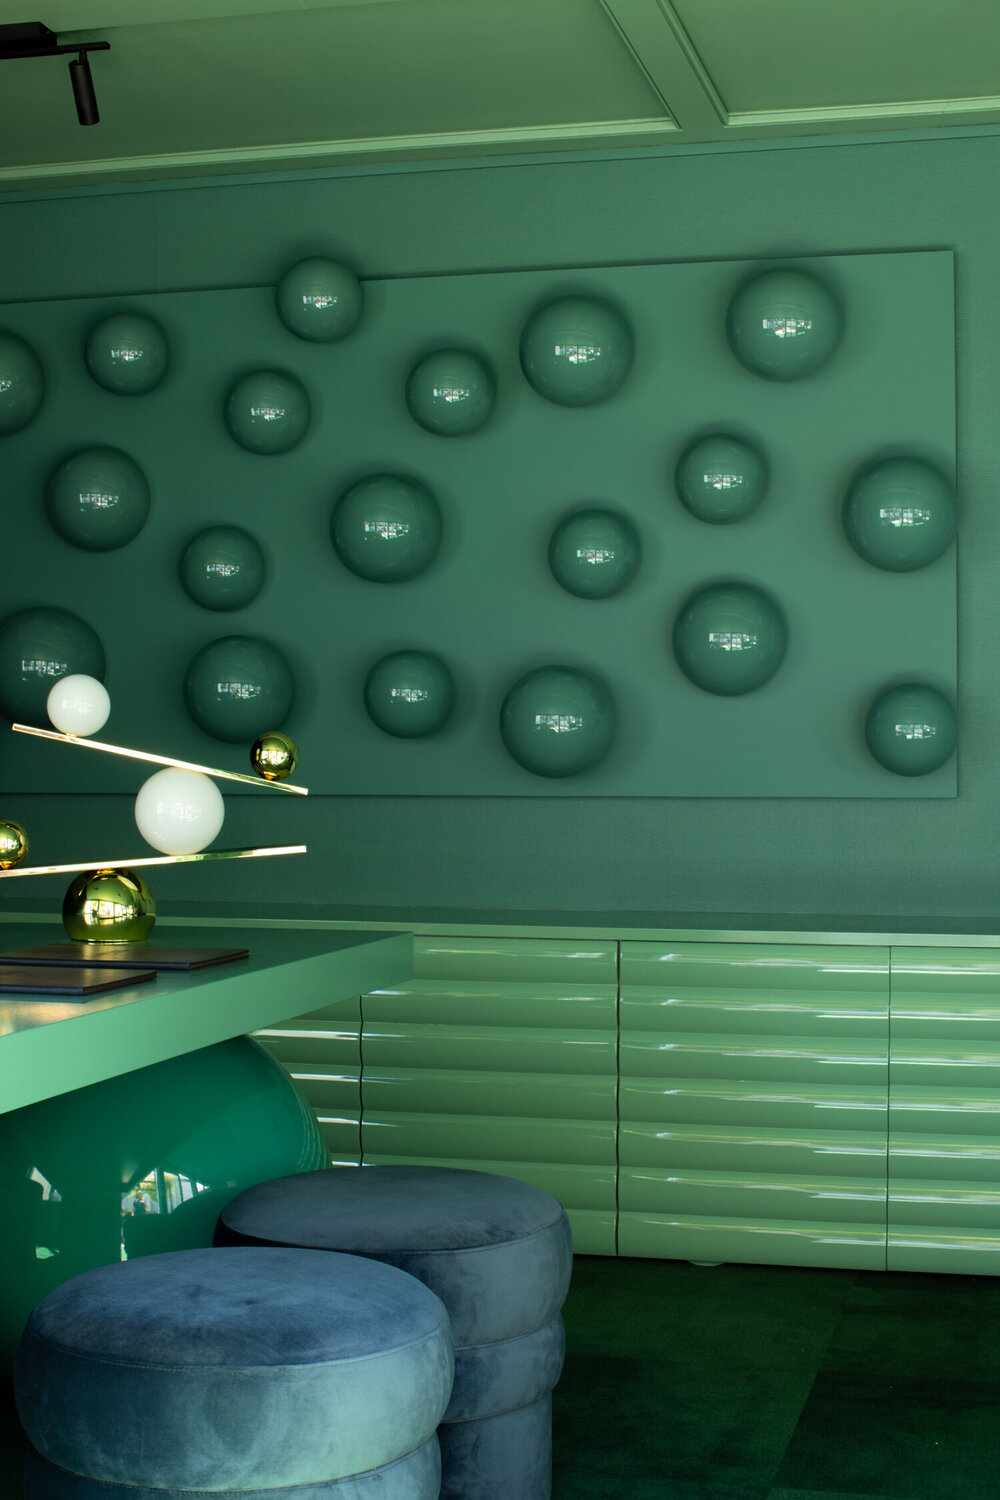 Oblure 'Balance' Lamp at The Central hotel by Undercurrent Studio